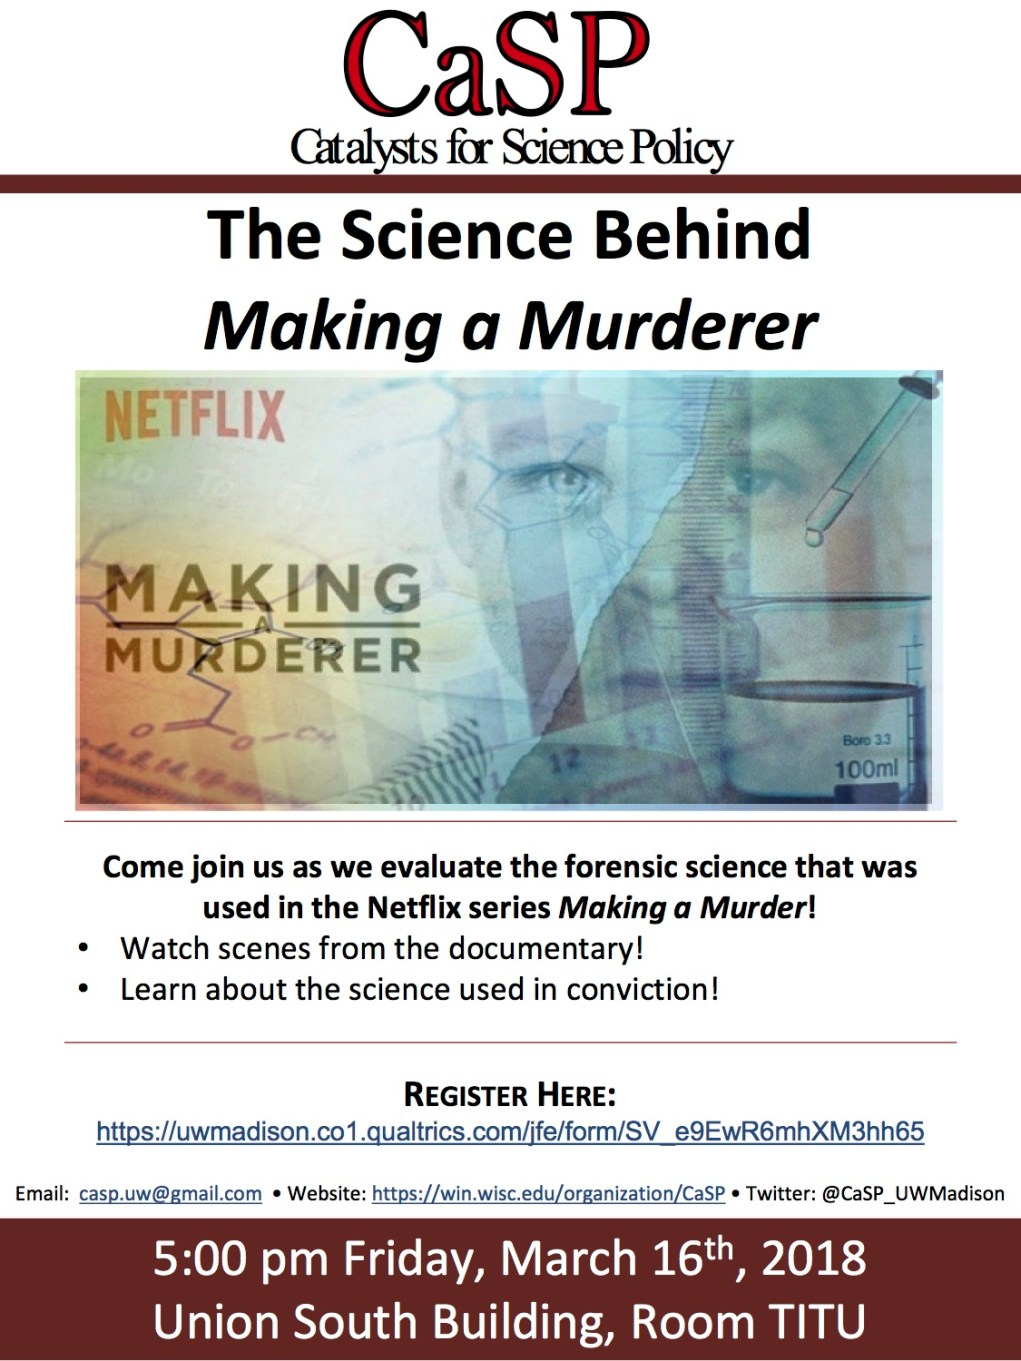 ScienceBehindMakingaMurderer3.16.18 copy